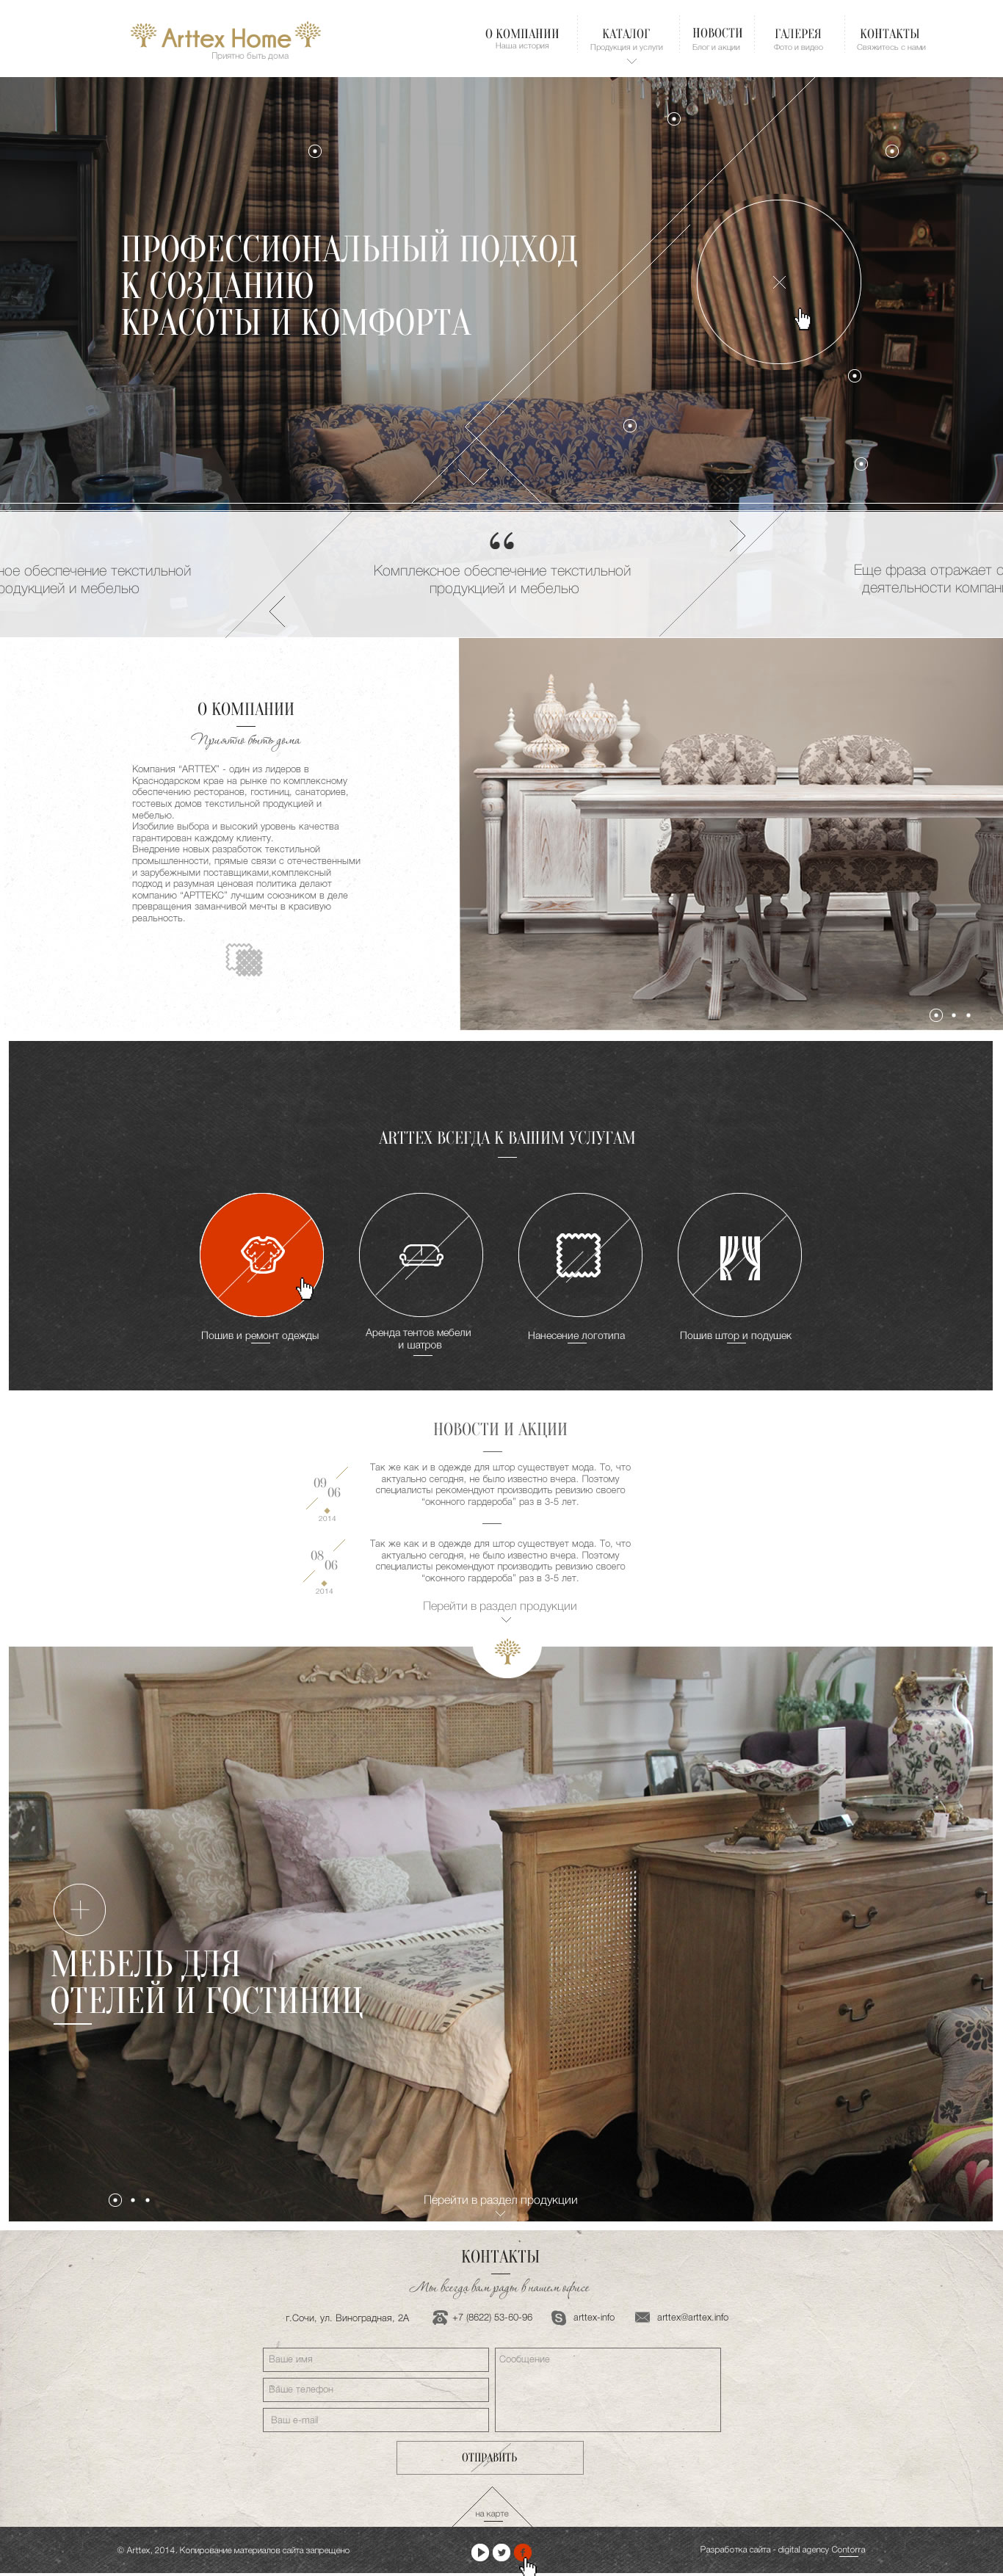 Main page design for Arttex Home